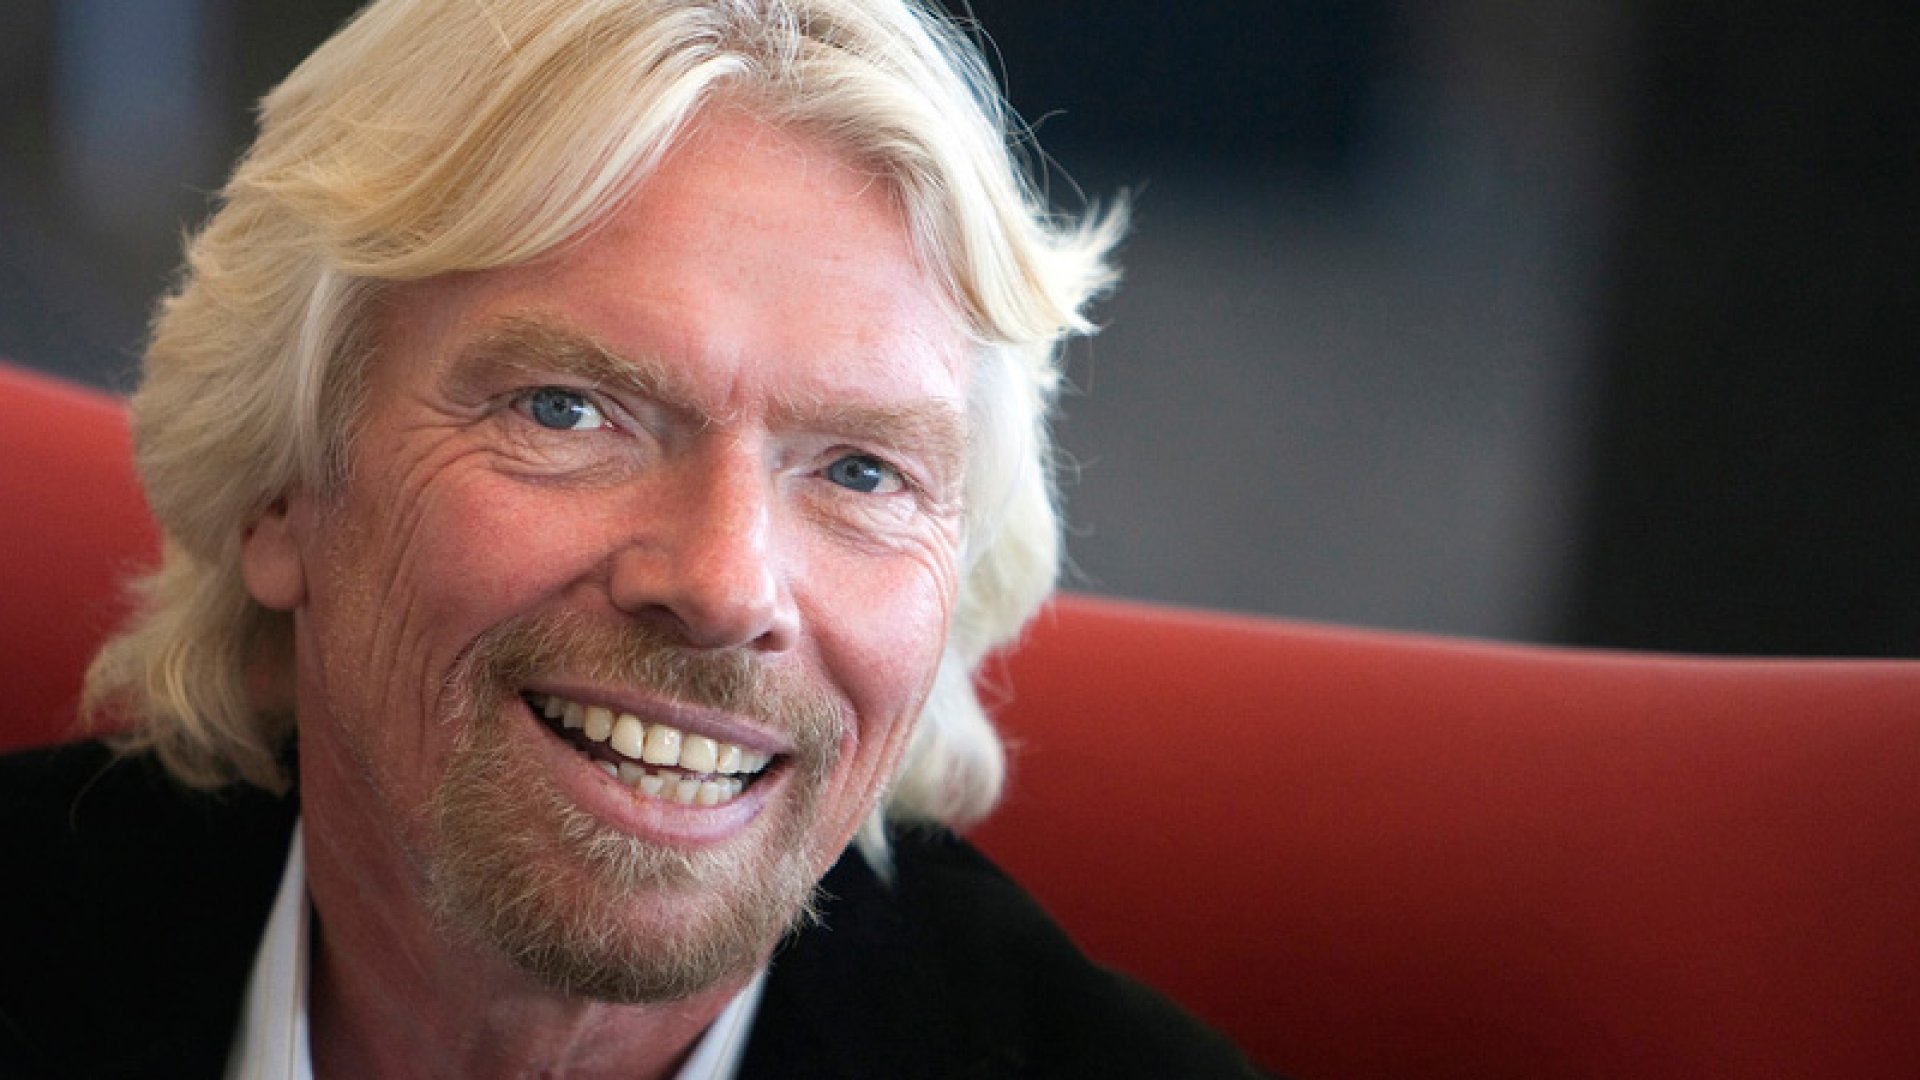 Richard Branson: The Advice Entrepreneurs Thank Me for the Most